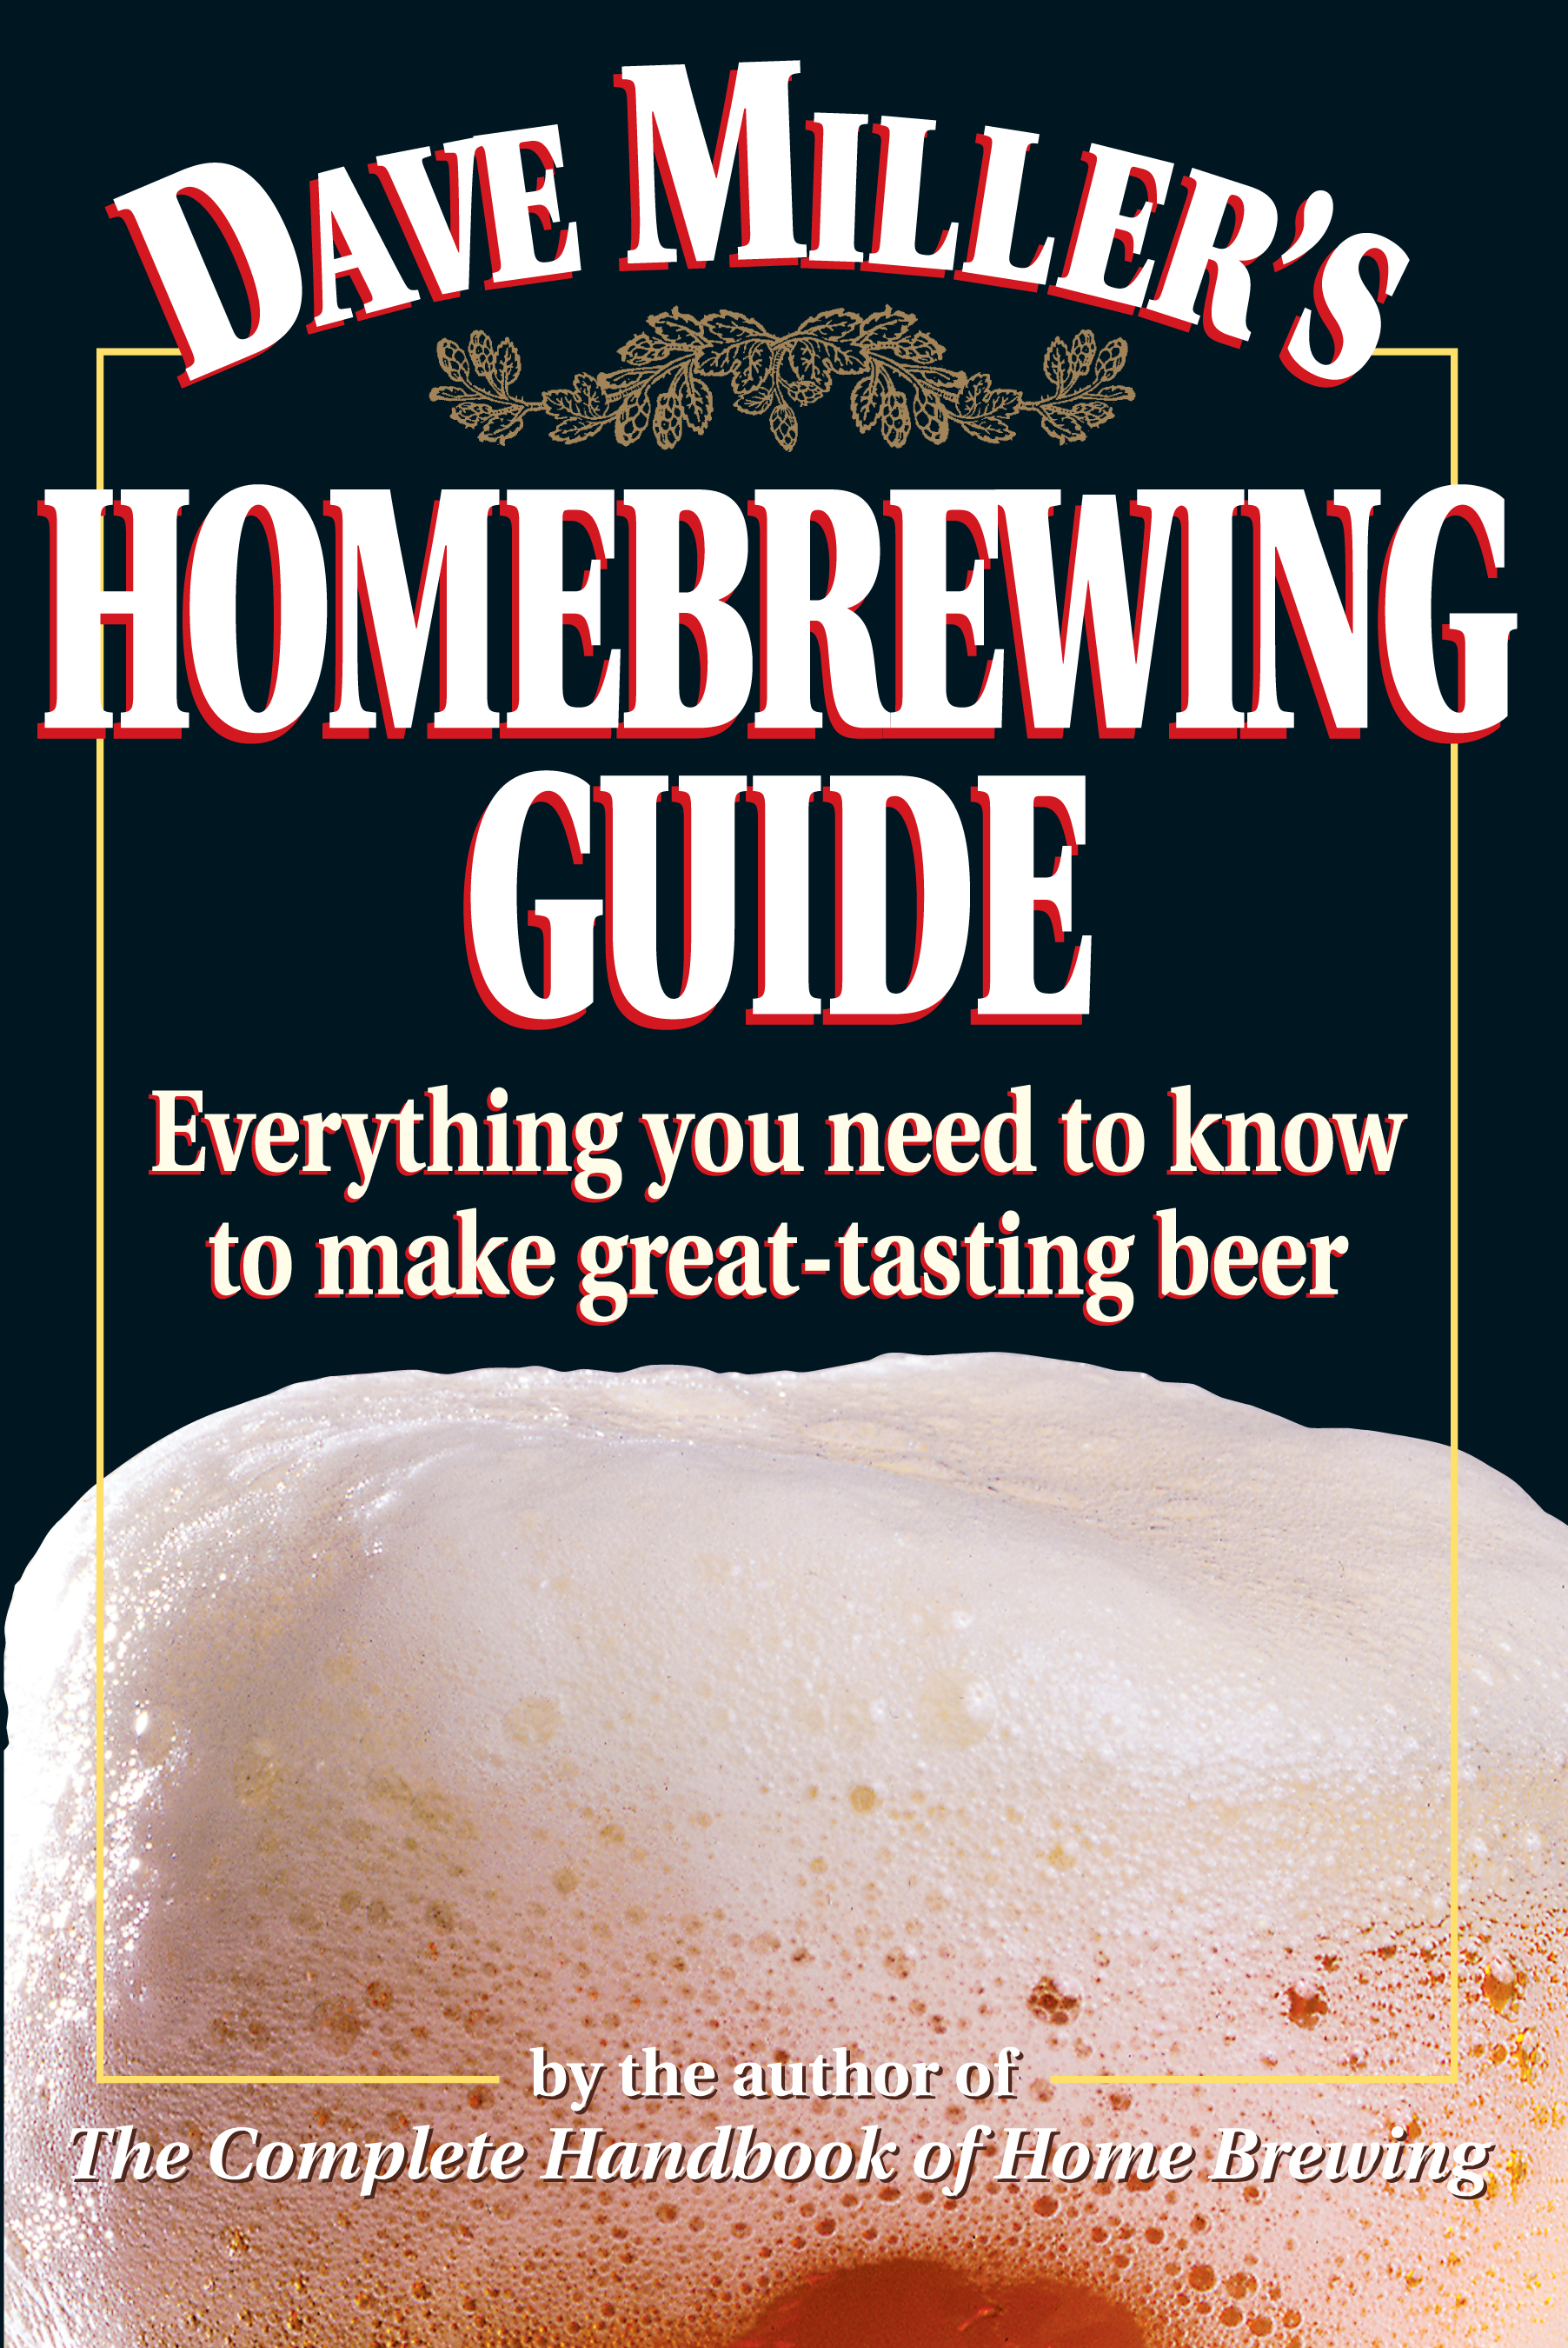 Dave Miller's Homebrewing Guide Everything You Need to Know to Make Great-Tasting Beer - Dave Miller